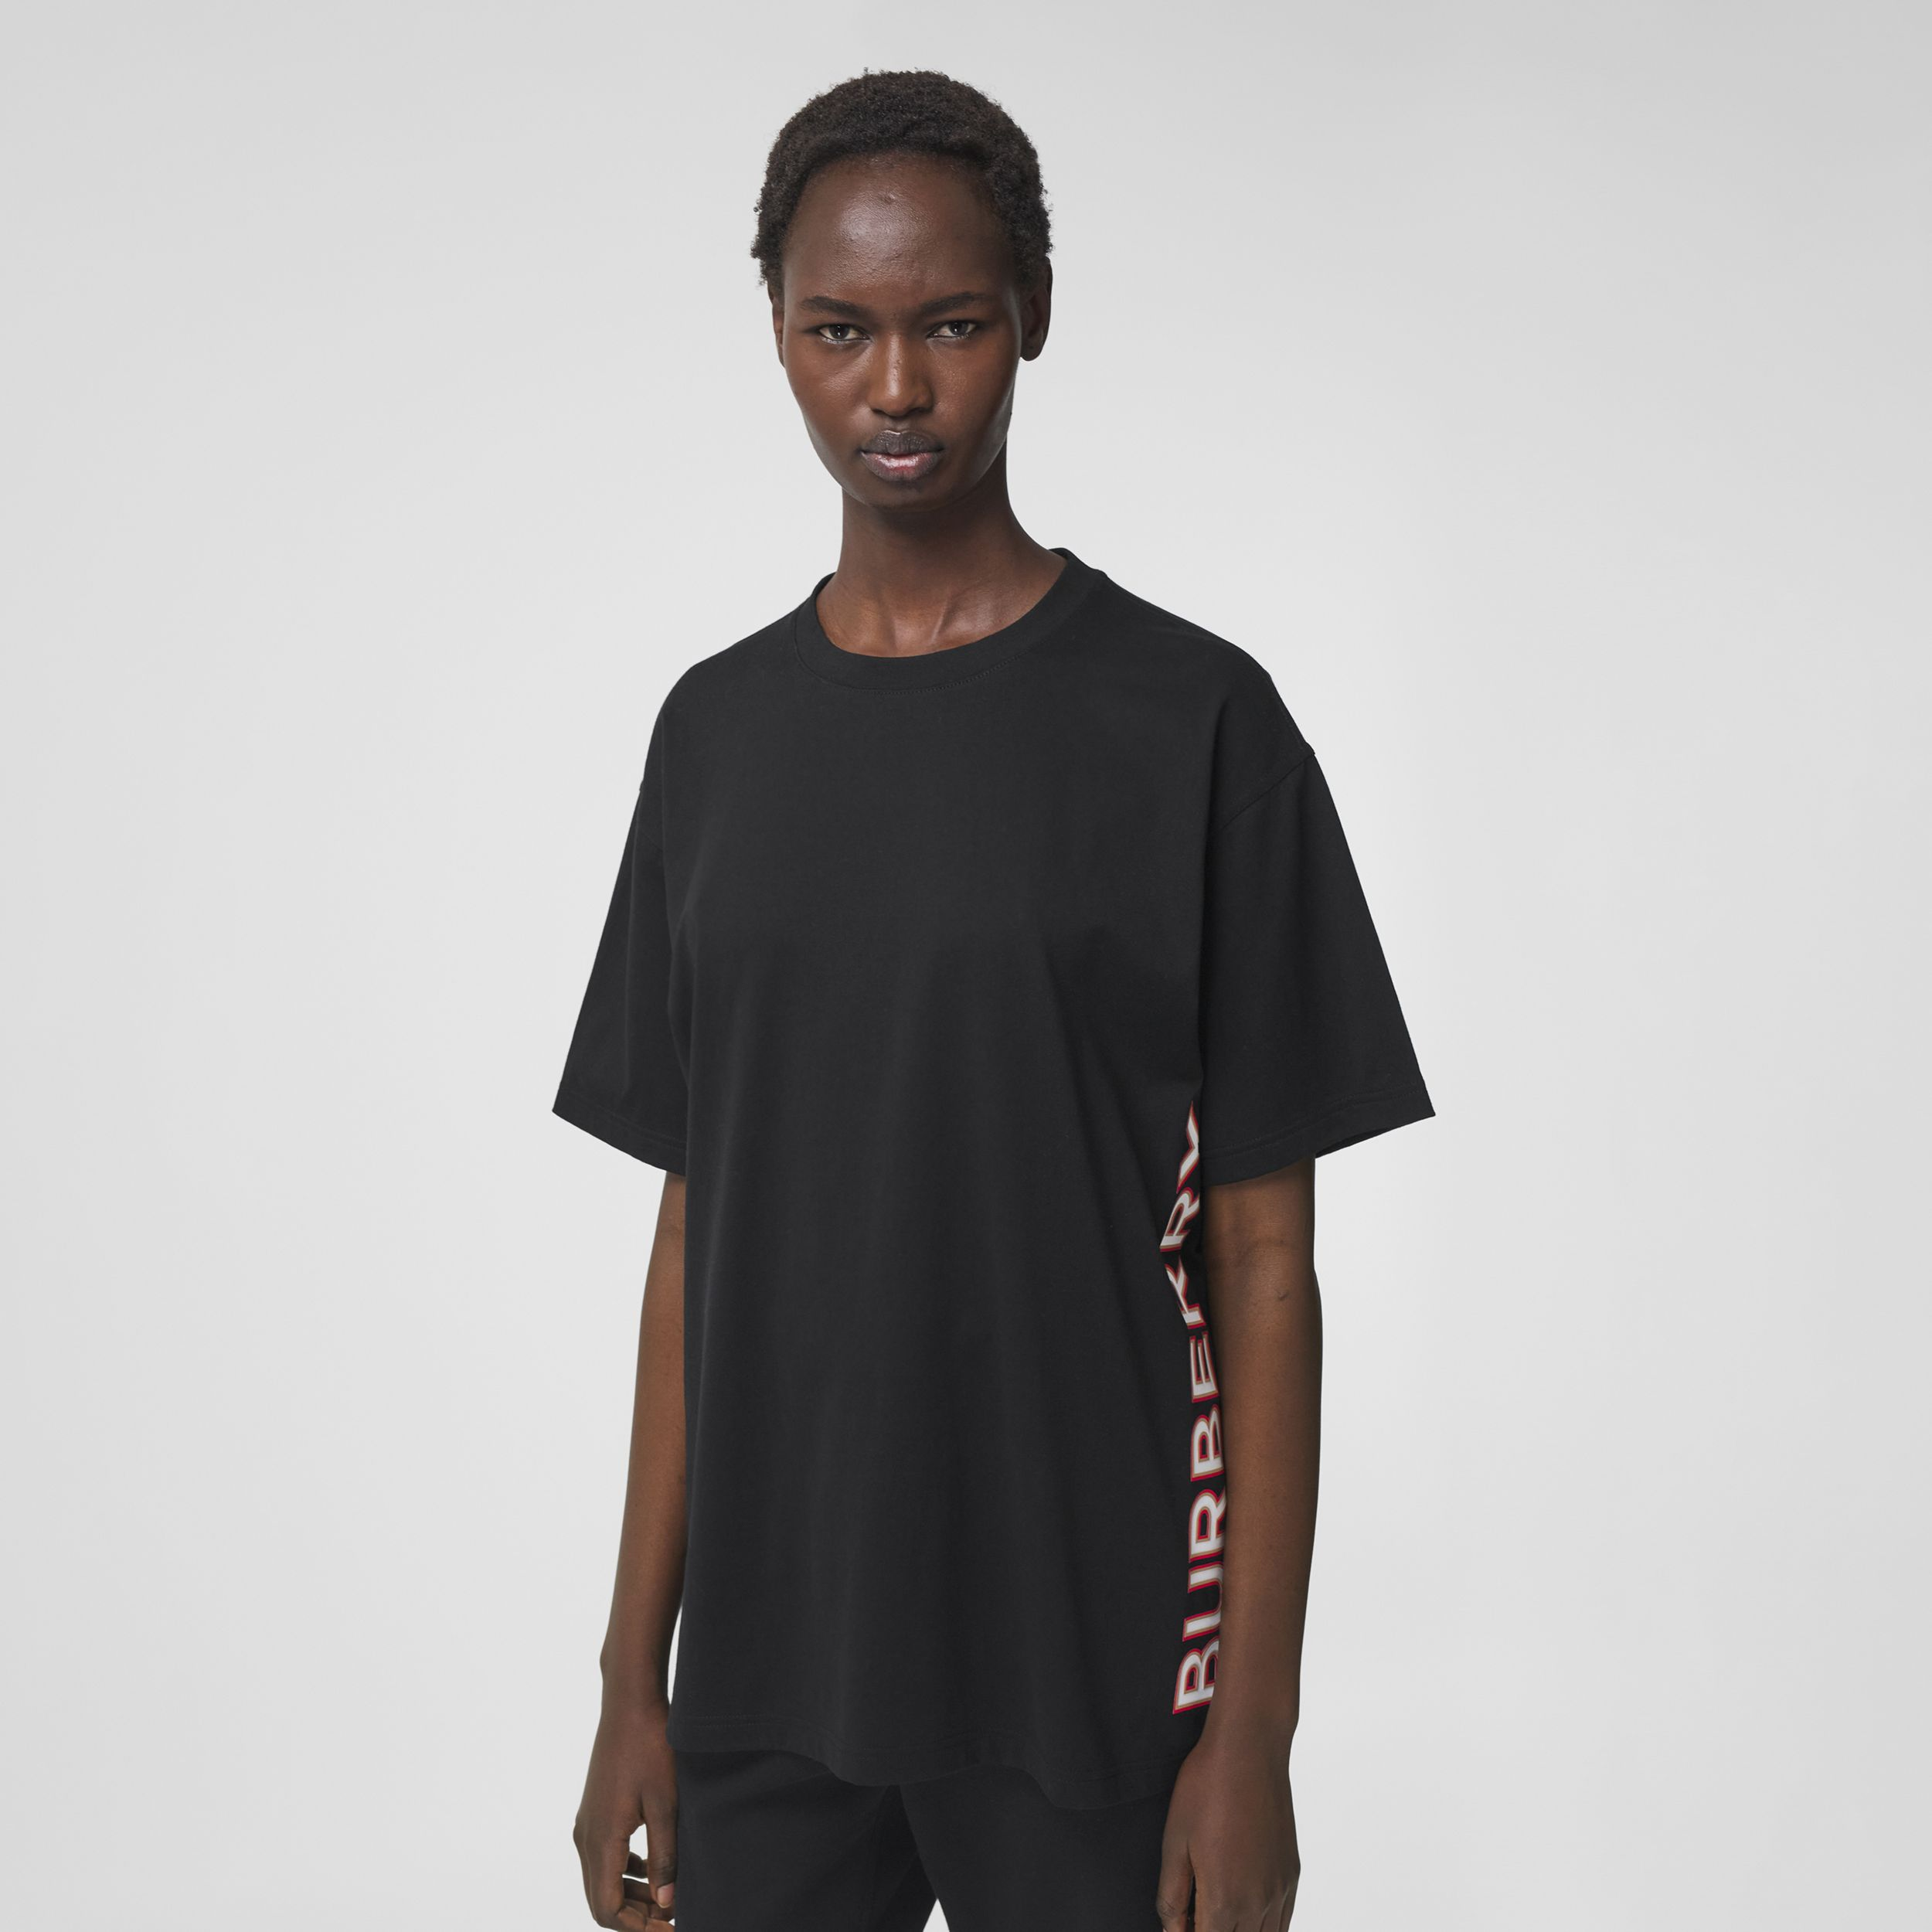 Logo Print Cotton Oversized T-shirt in Black - Women | Burberry Canada - 4